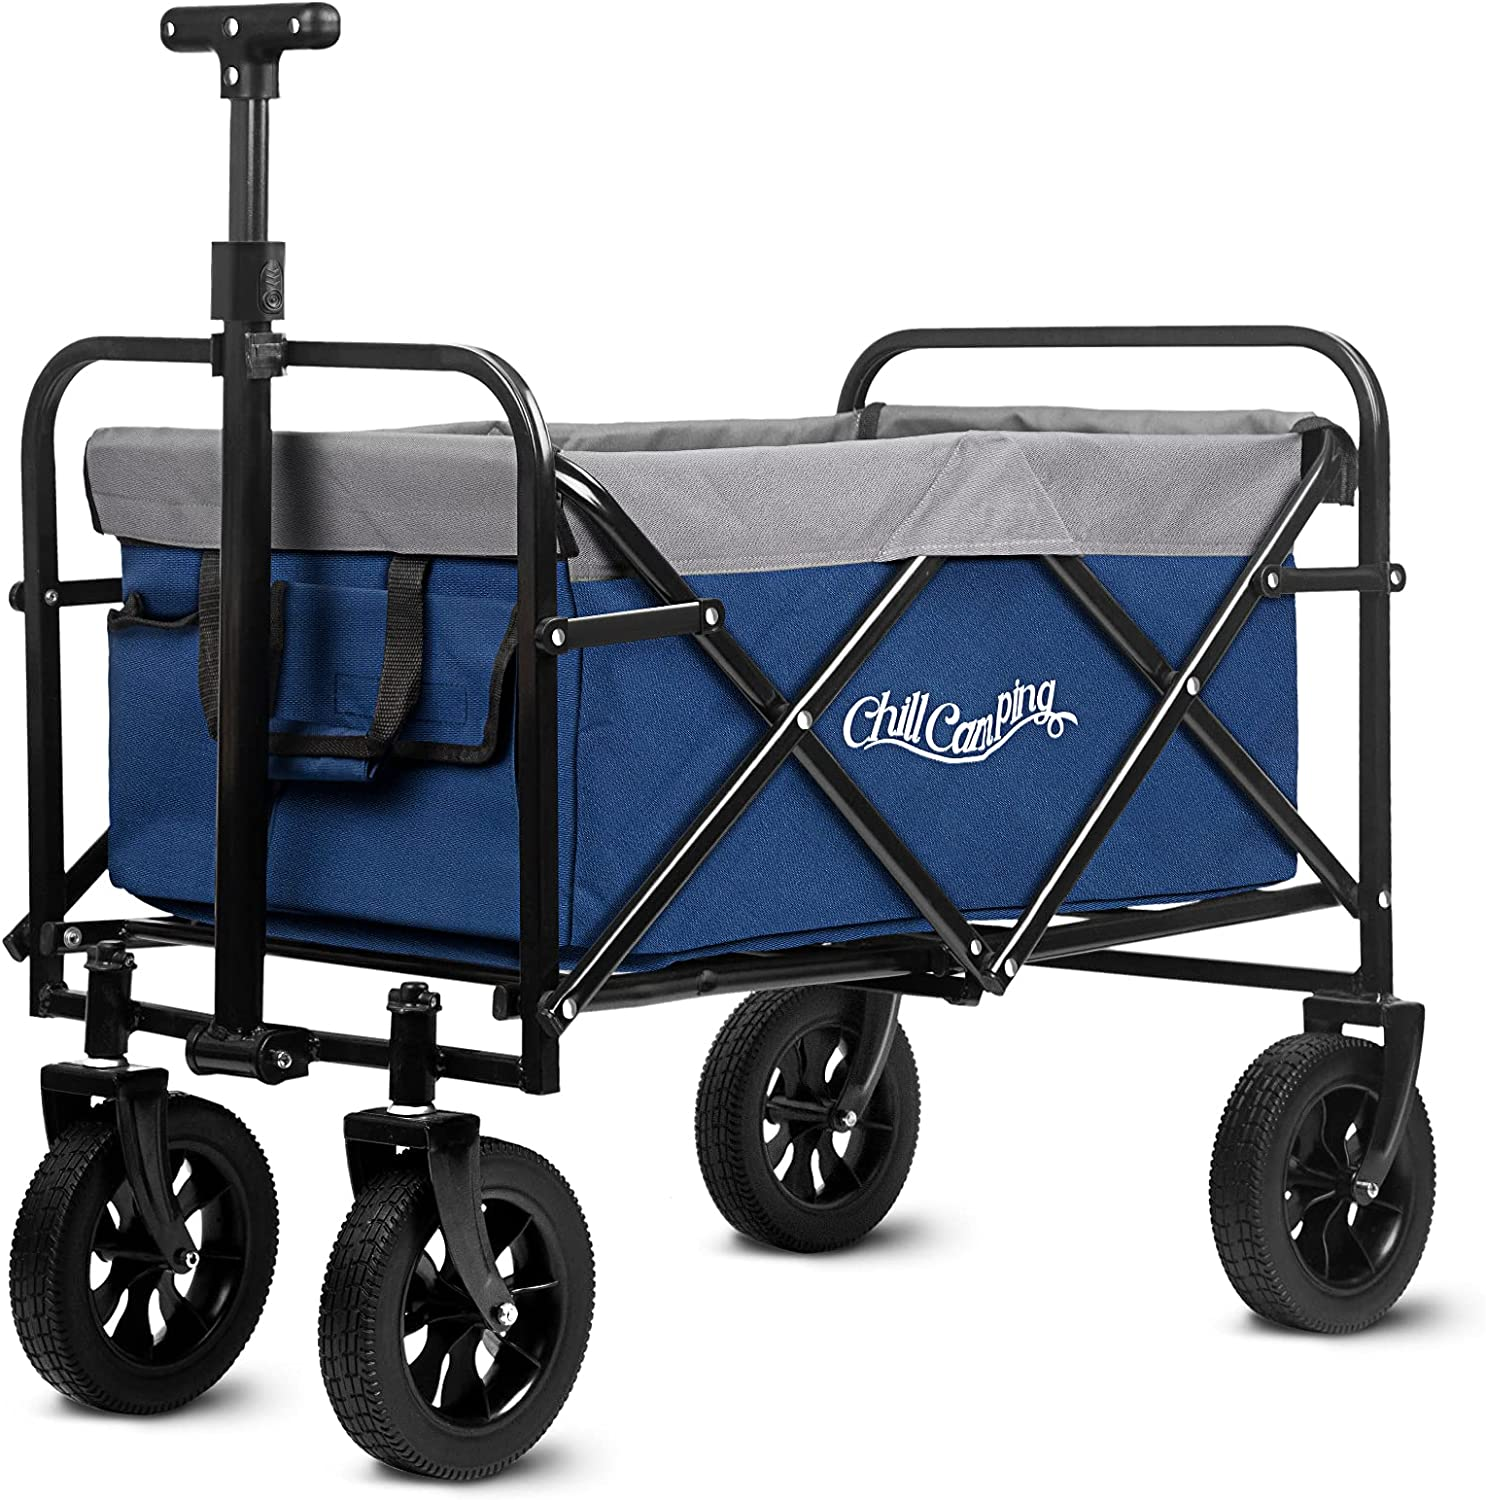 Collapsible Wagon Foldable Cart Luxury Ranking TOP8 with Terrain All Uti Big Wheels